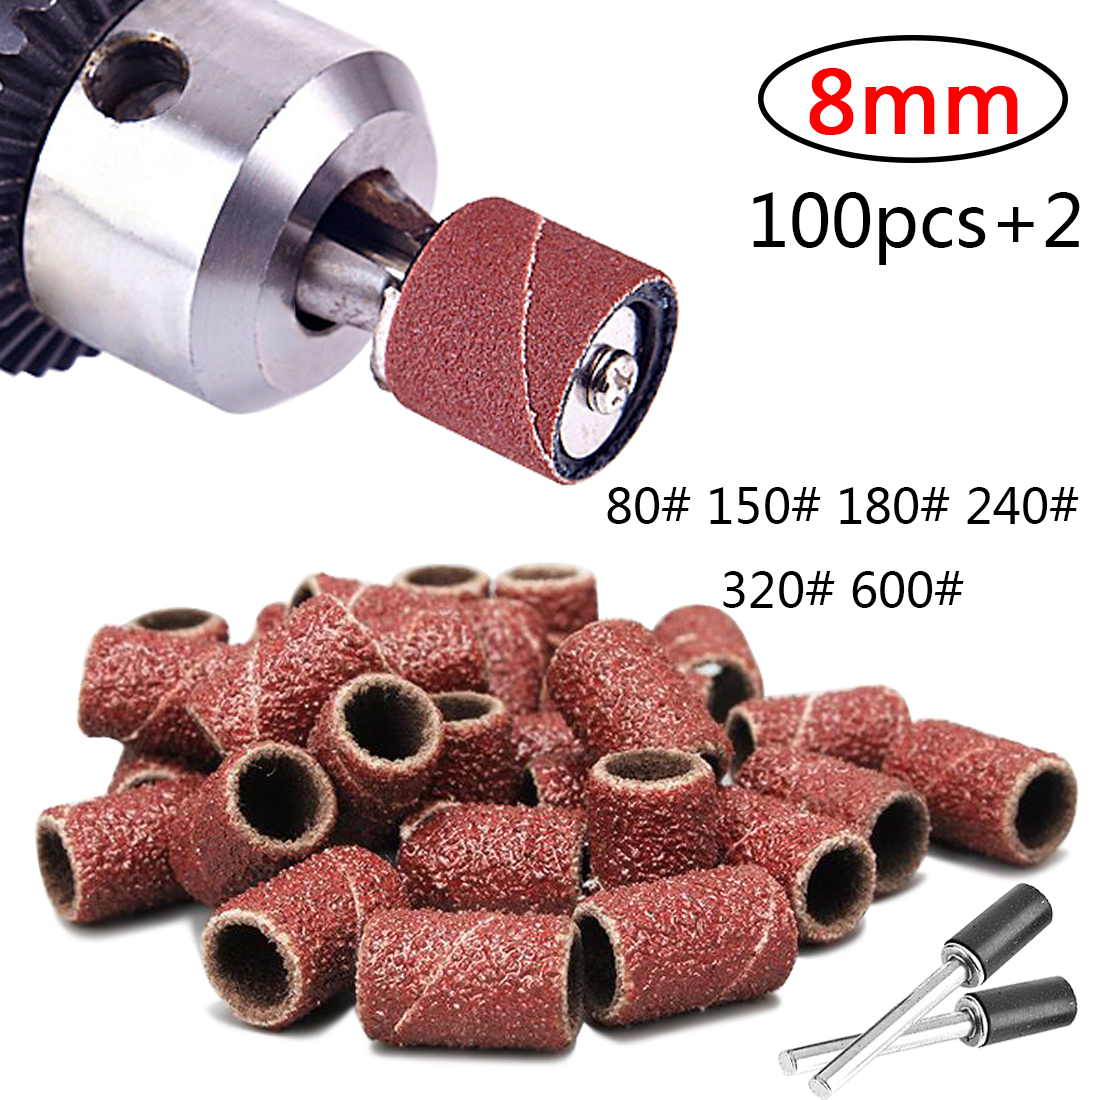 Abrasive Tools 100pcs 3/8